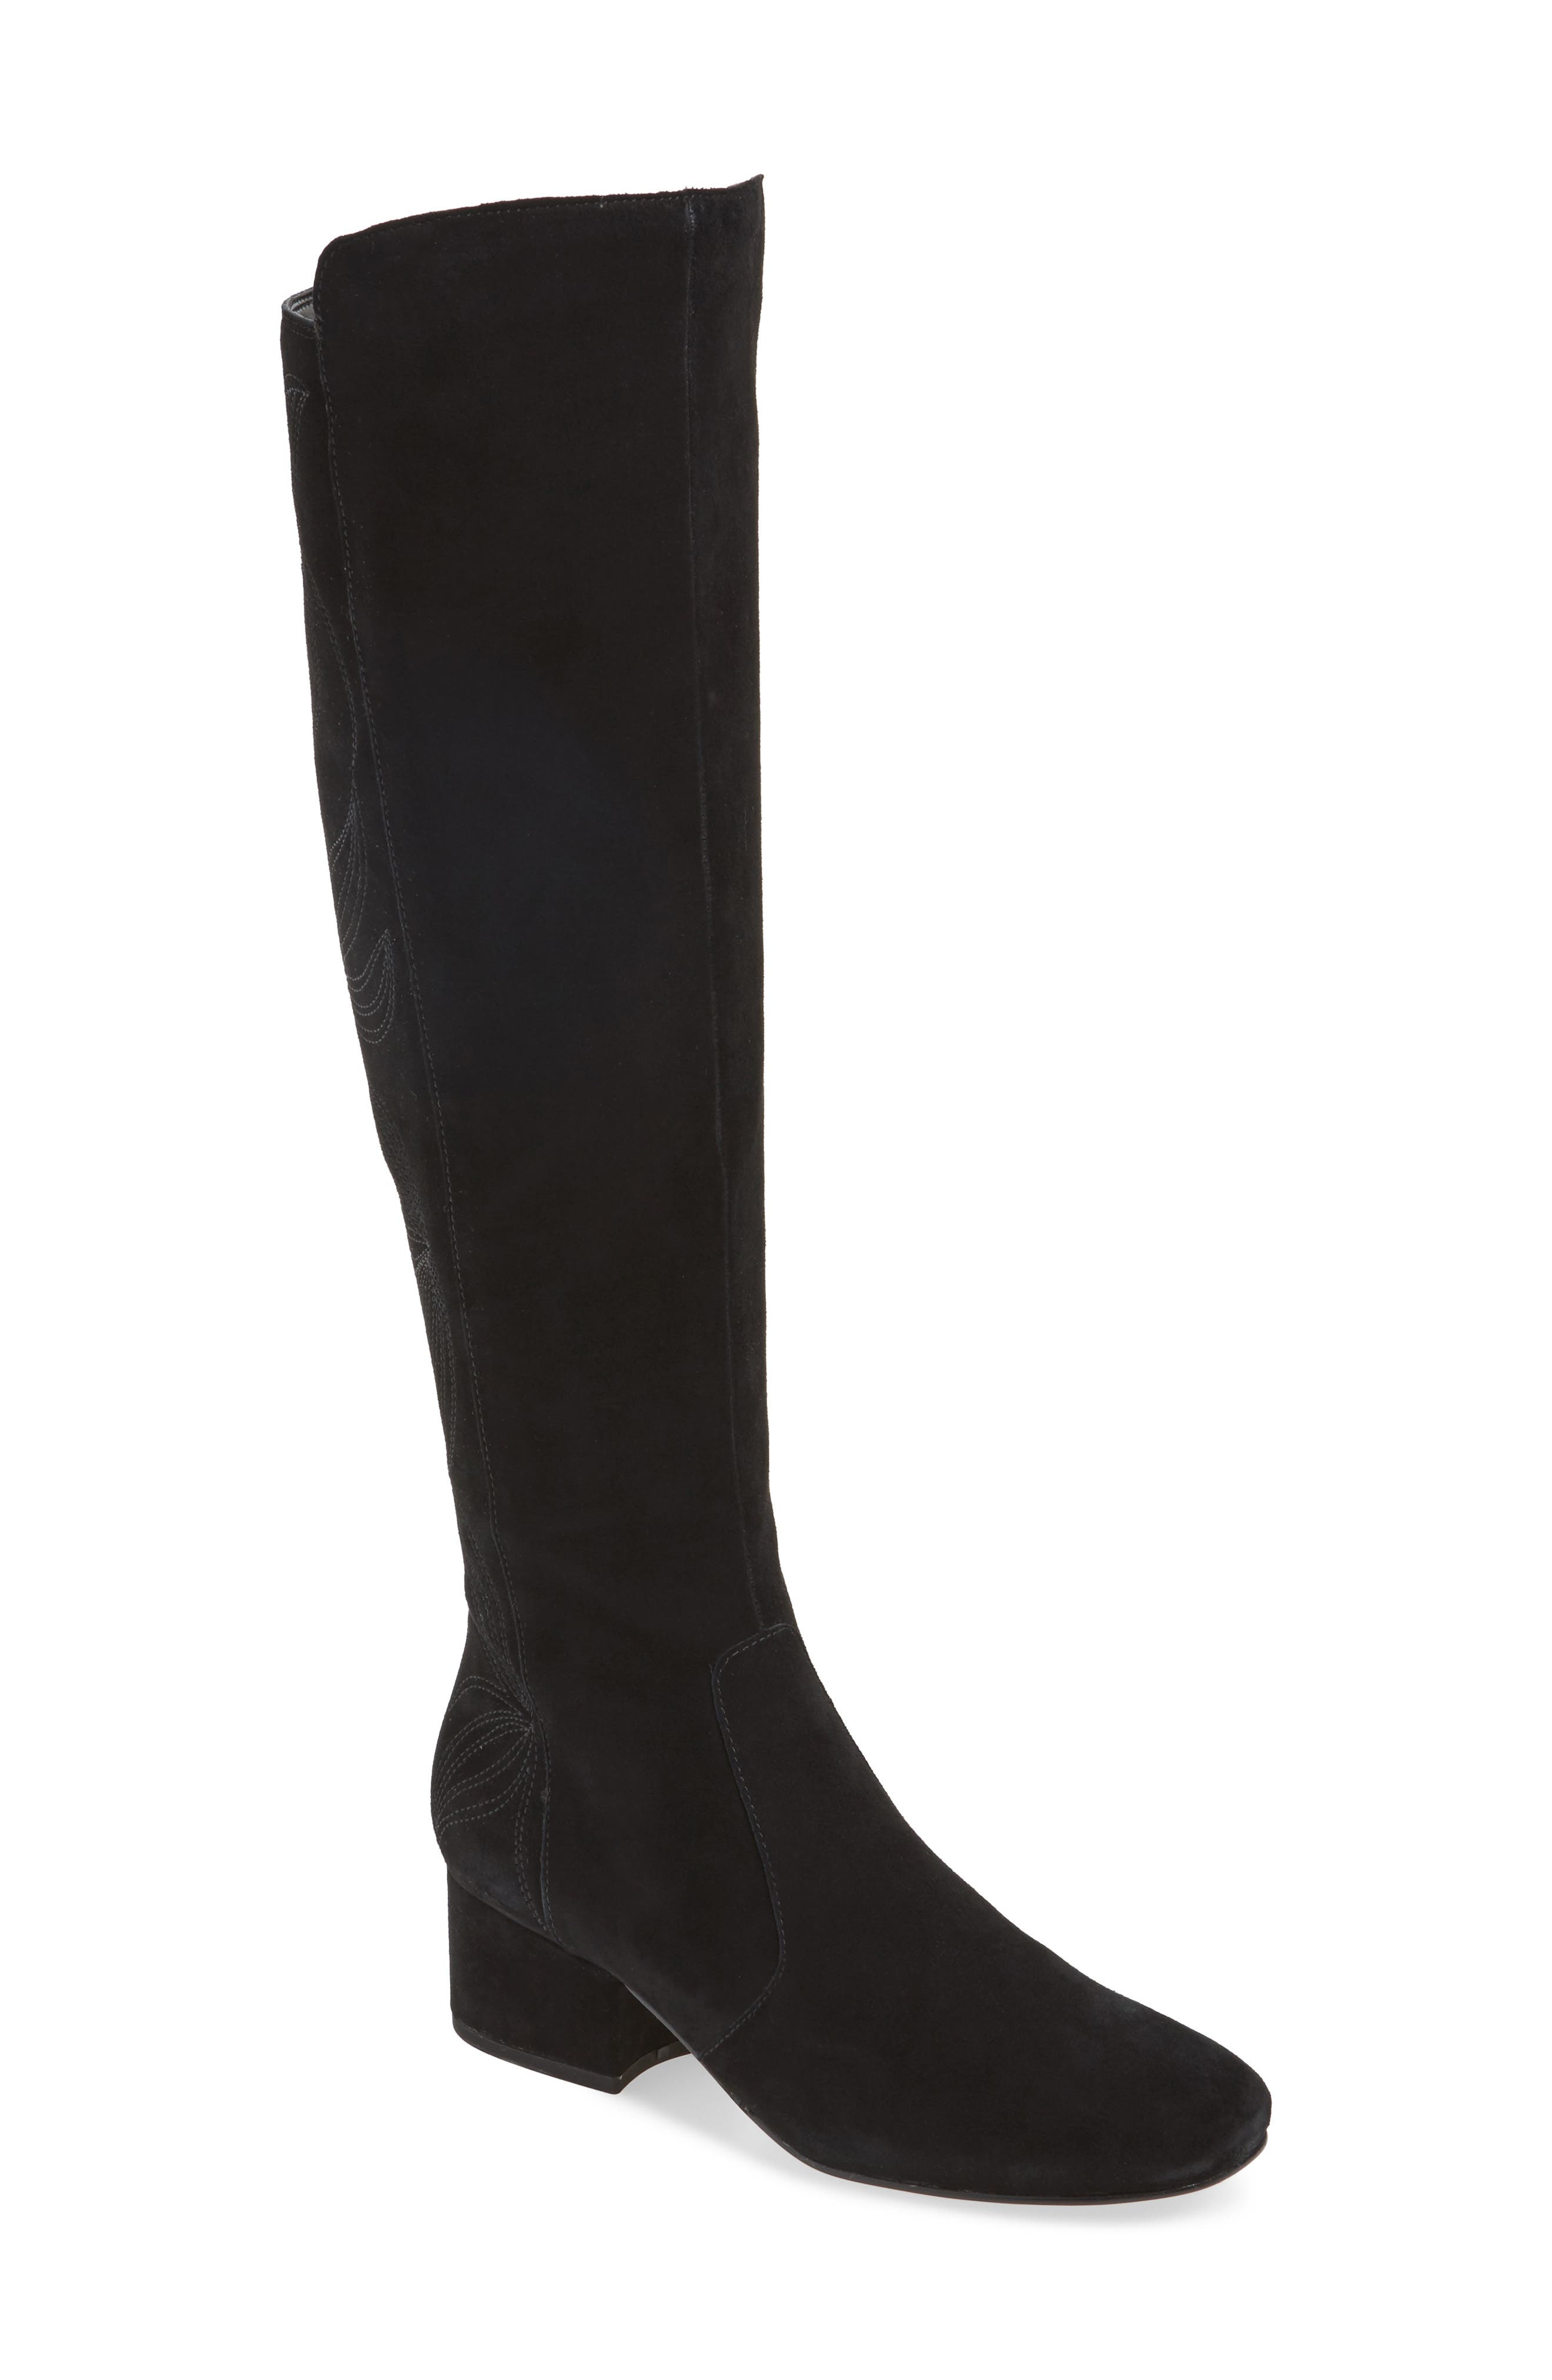 Tawnna Knee High Boot,                             Main thumbnail 1, color,                             Black Suede